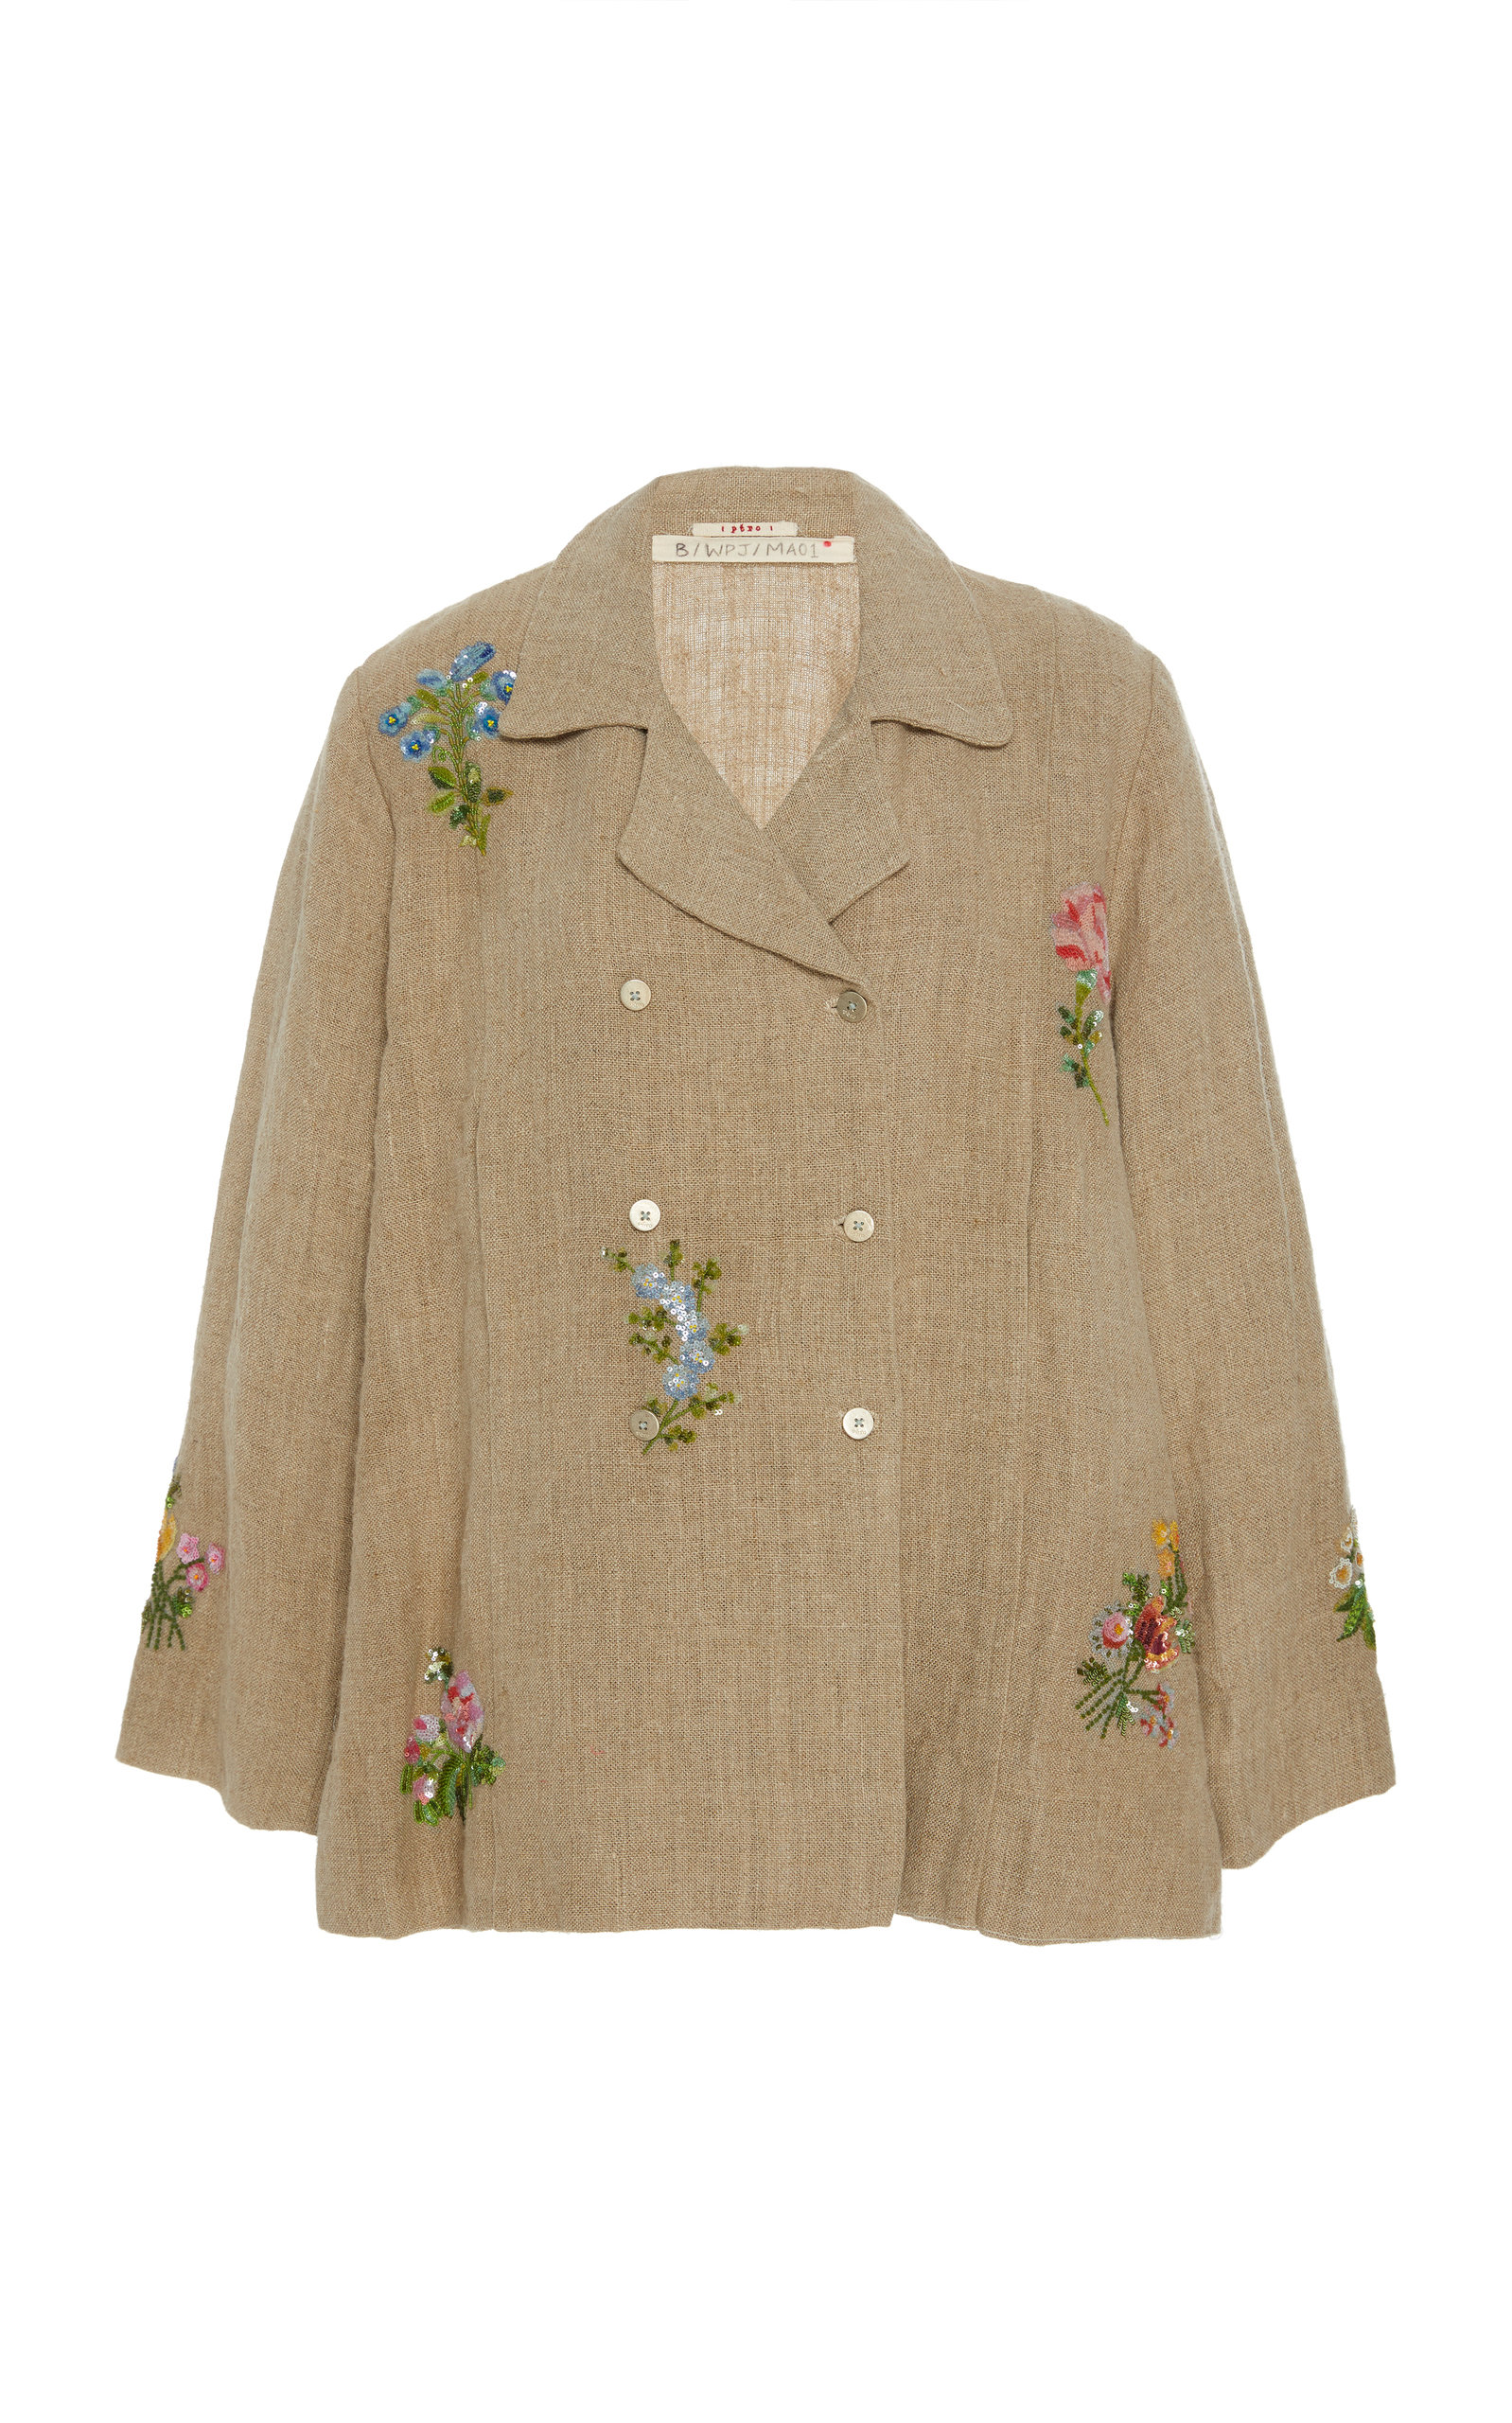 PÉRO Floral Embroidered Linen Jacket in Neutral